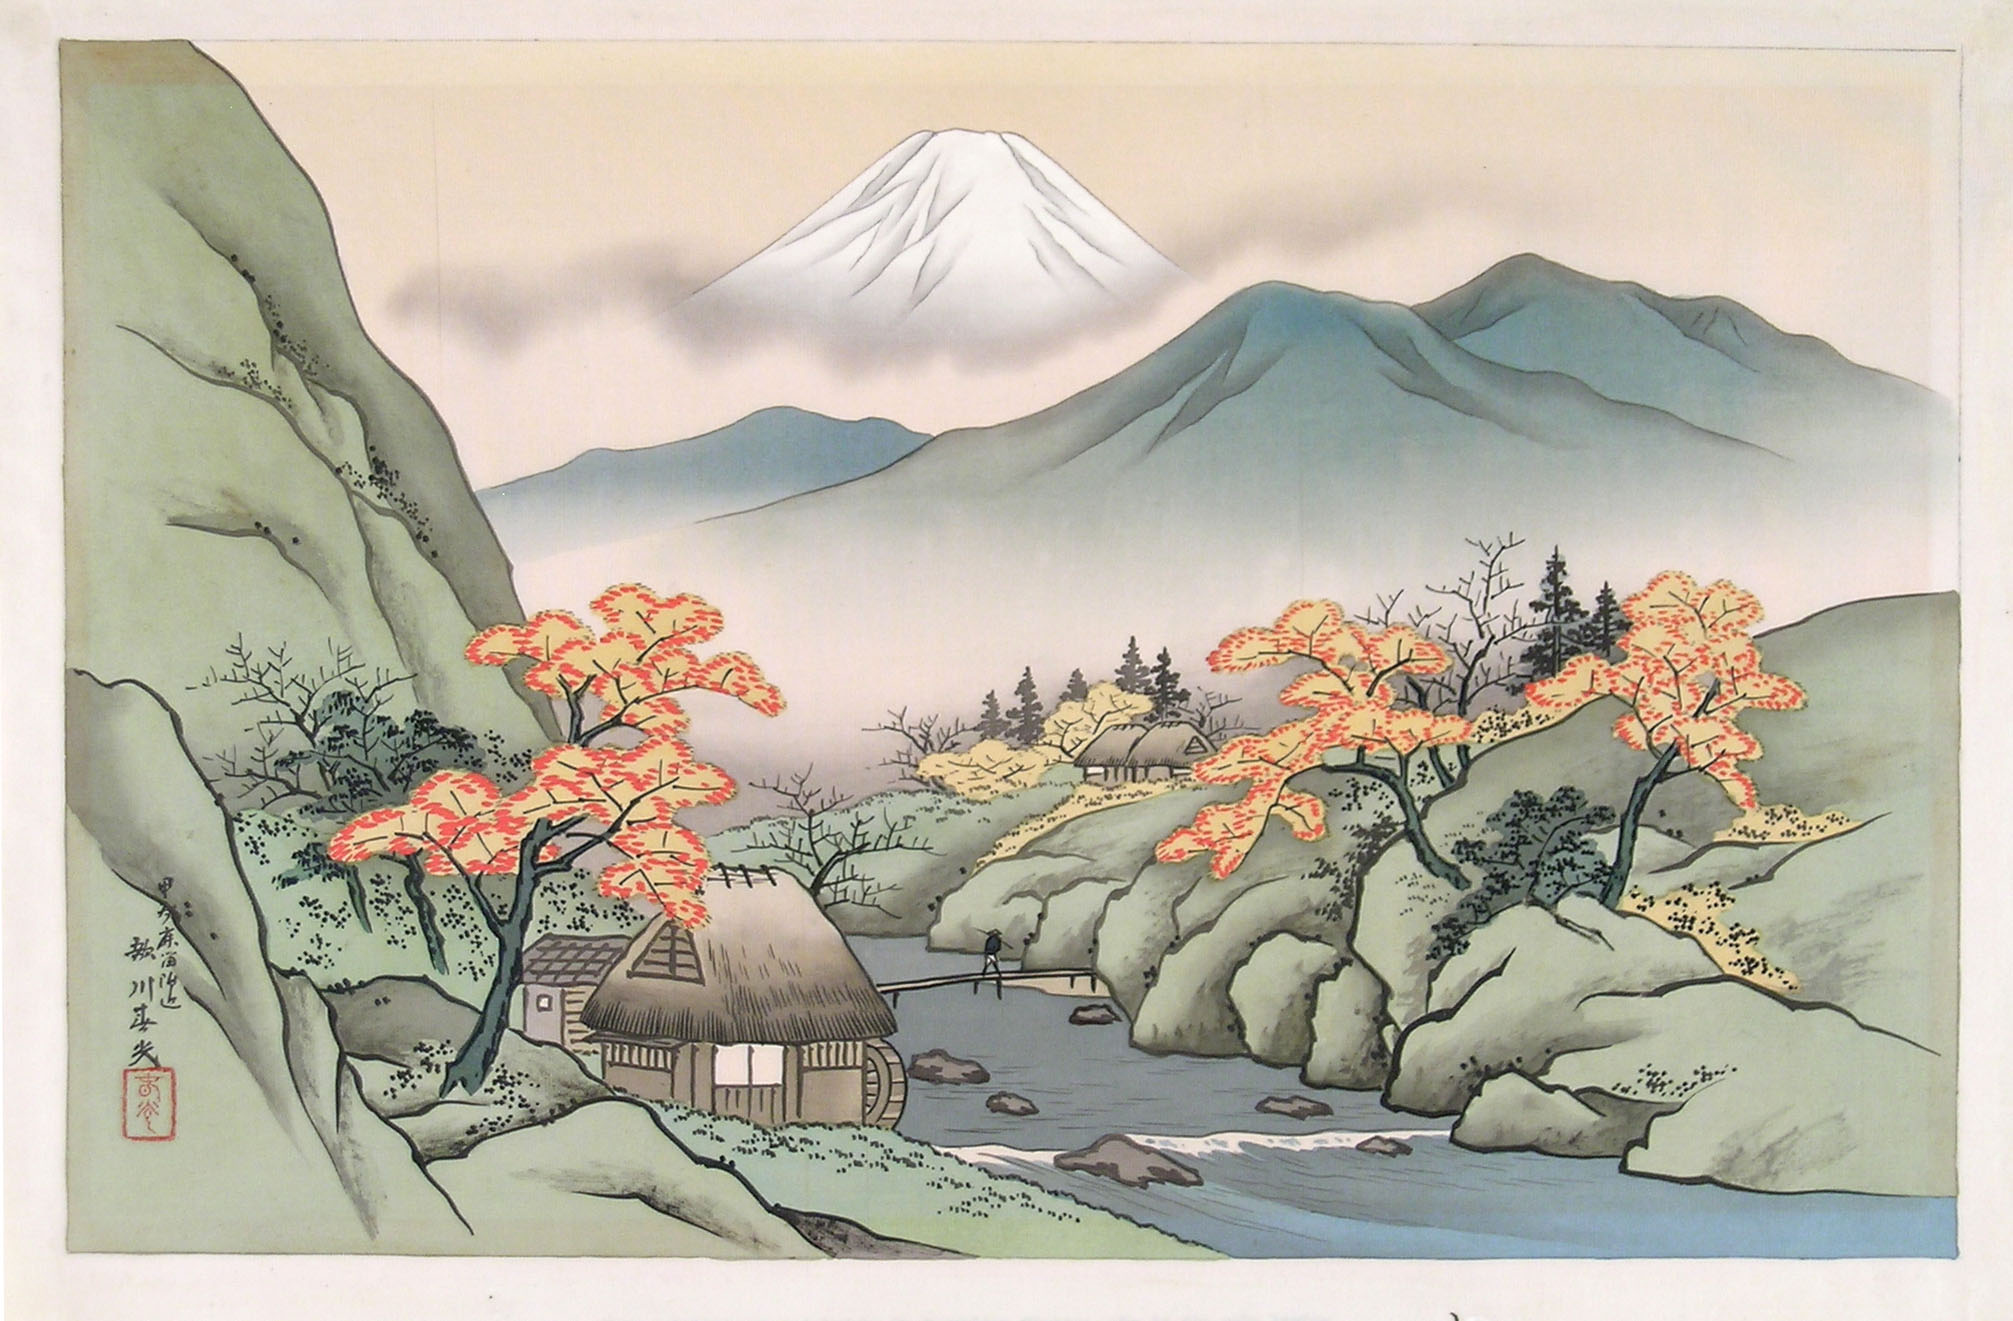 Japanese Landscape Drawing of 20th Century Landscape